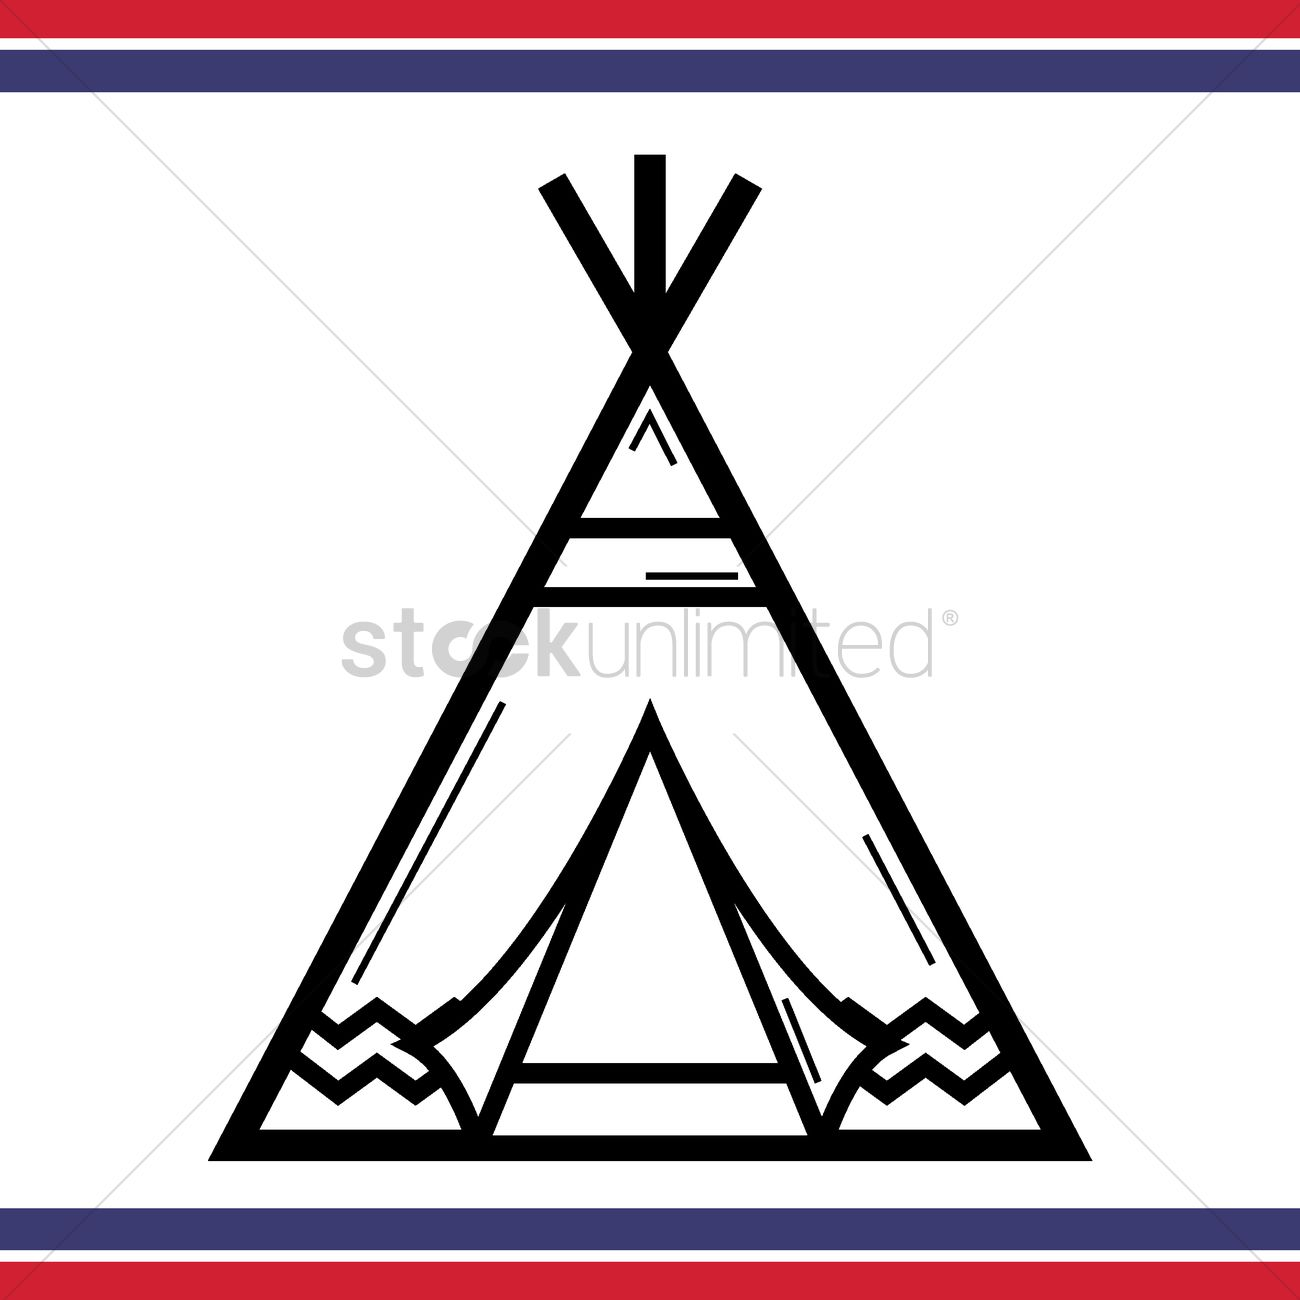 native american tepee tent vector graphic  sc 1 st  StockUnlimited & Native american tepee tent Vector Image - 1557592   StockUnlimited